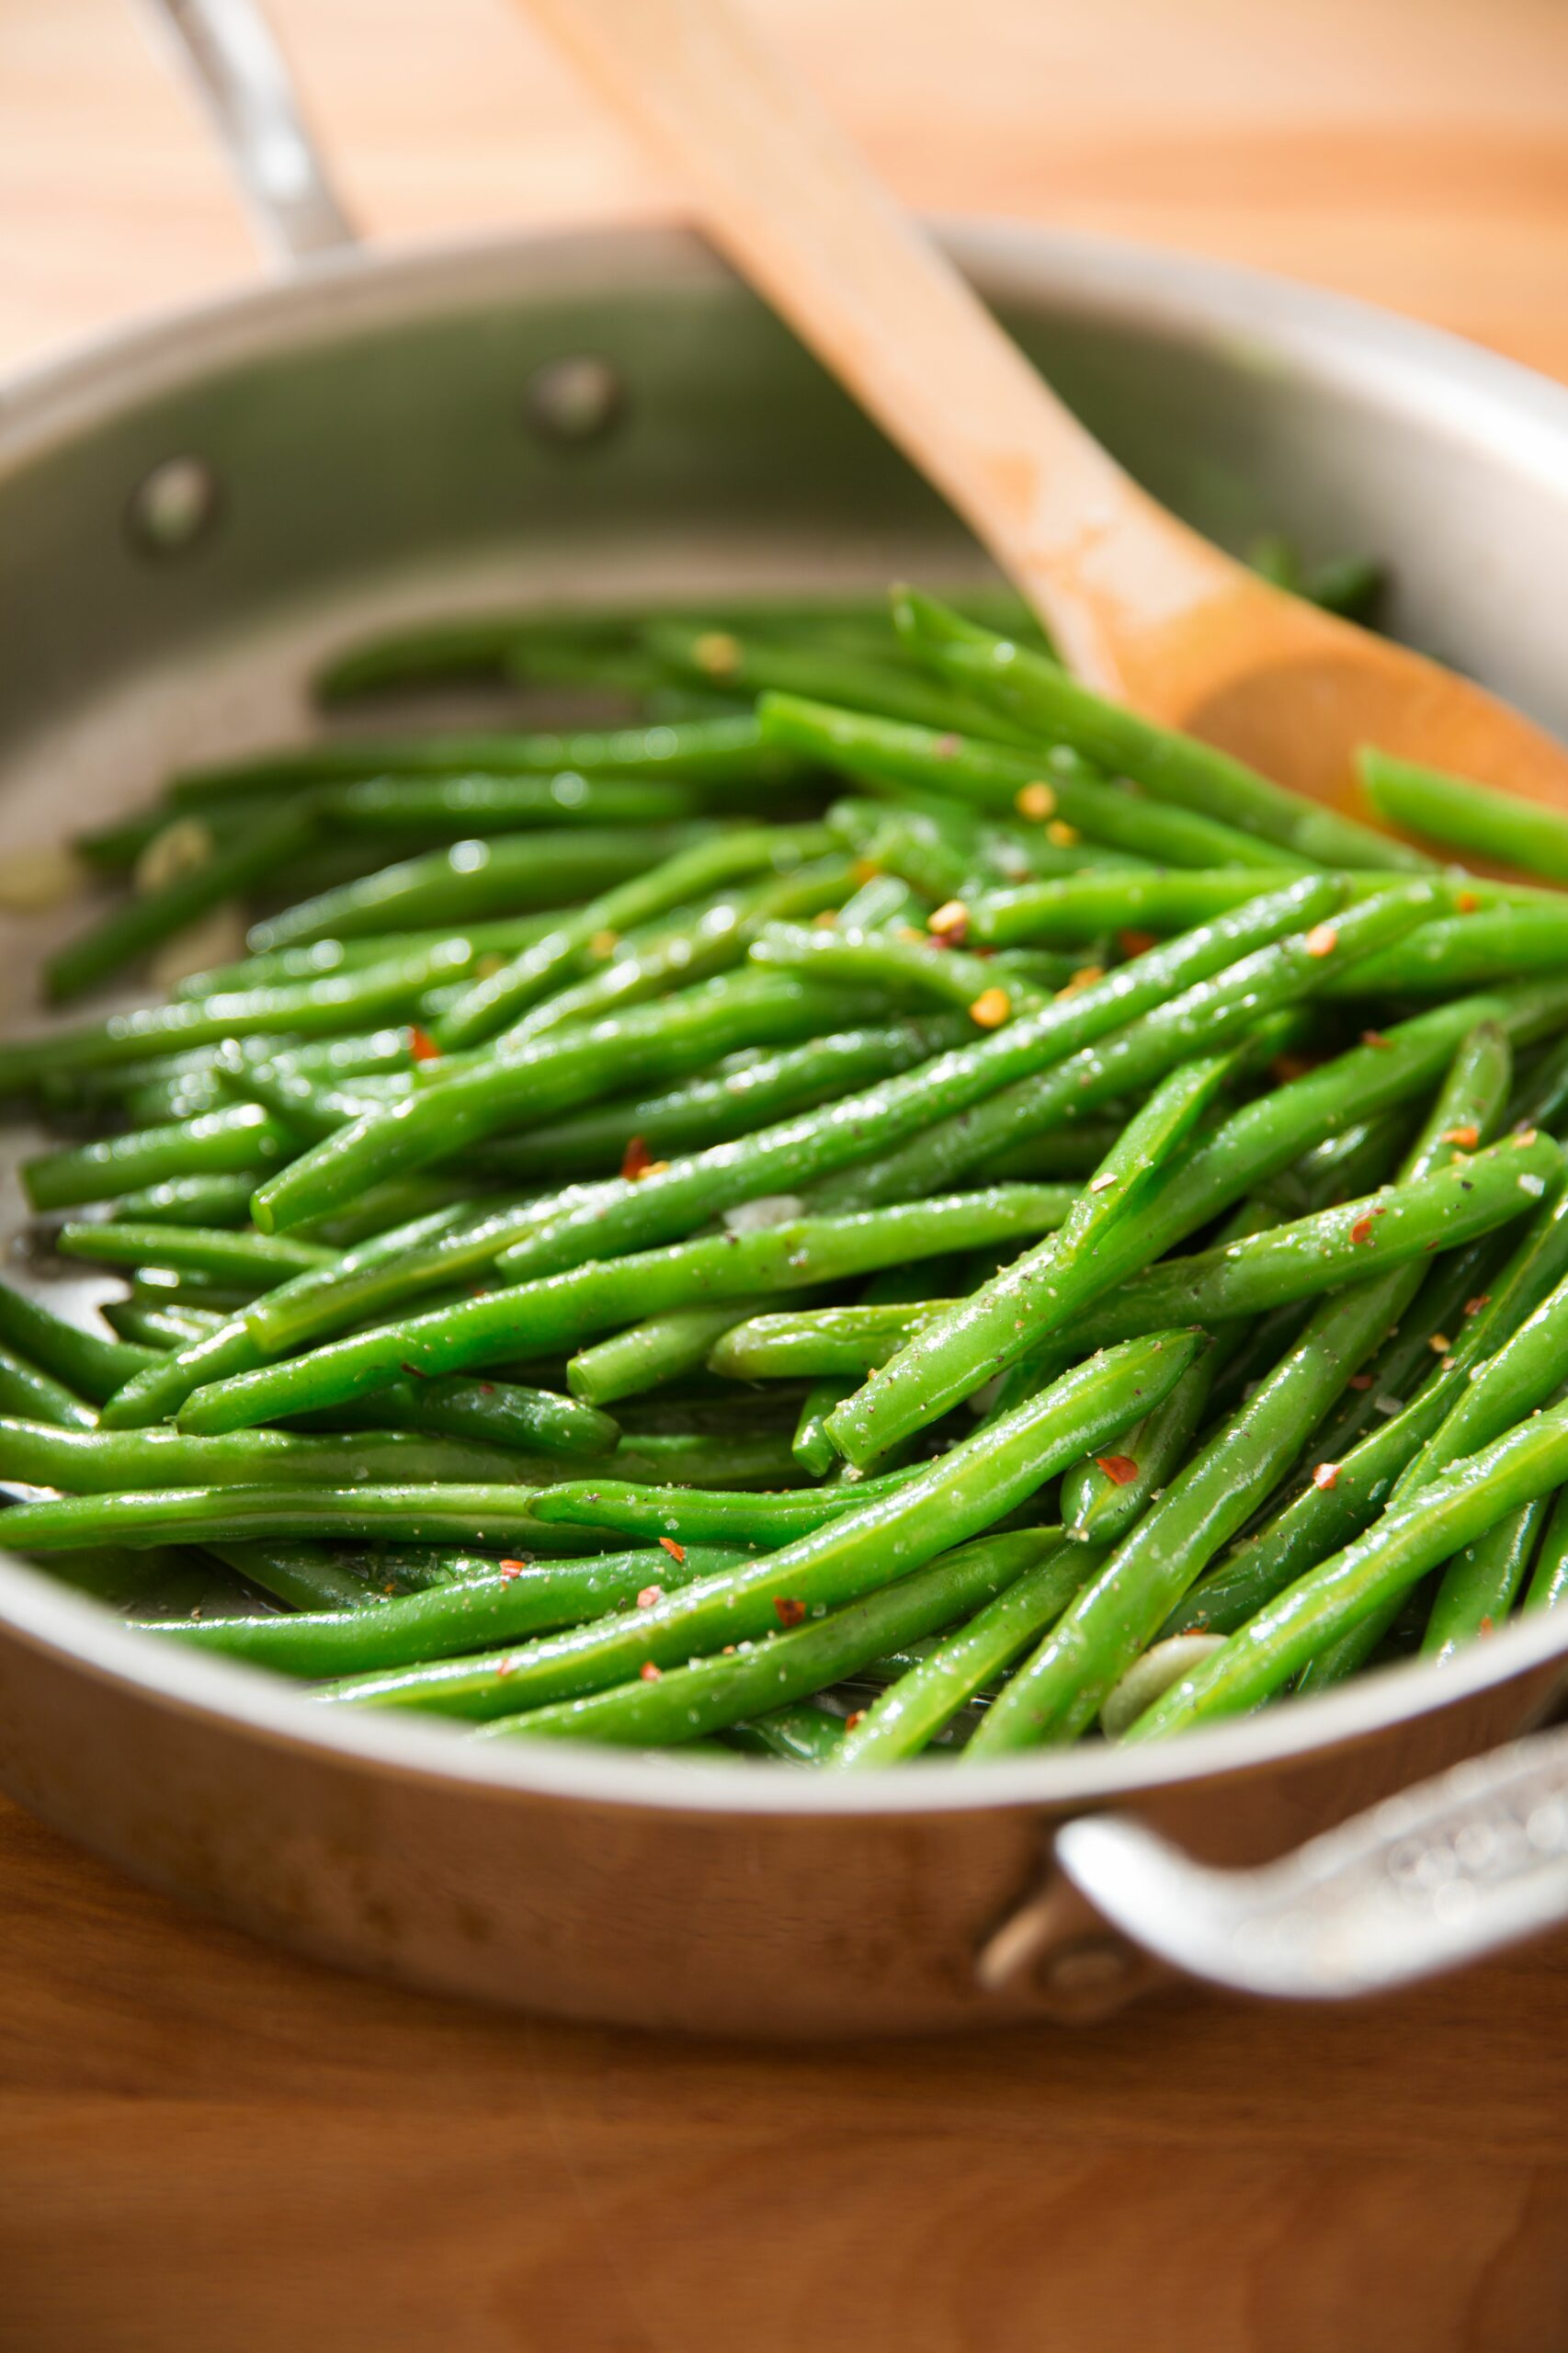 How To Cook Green Beans - Recipes Cooking Fresh Green Beans